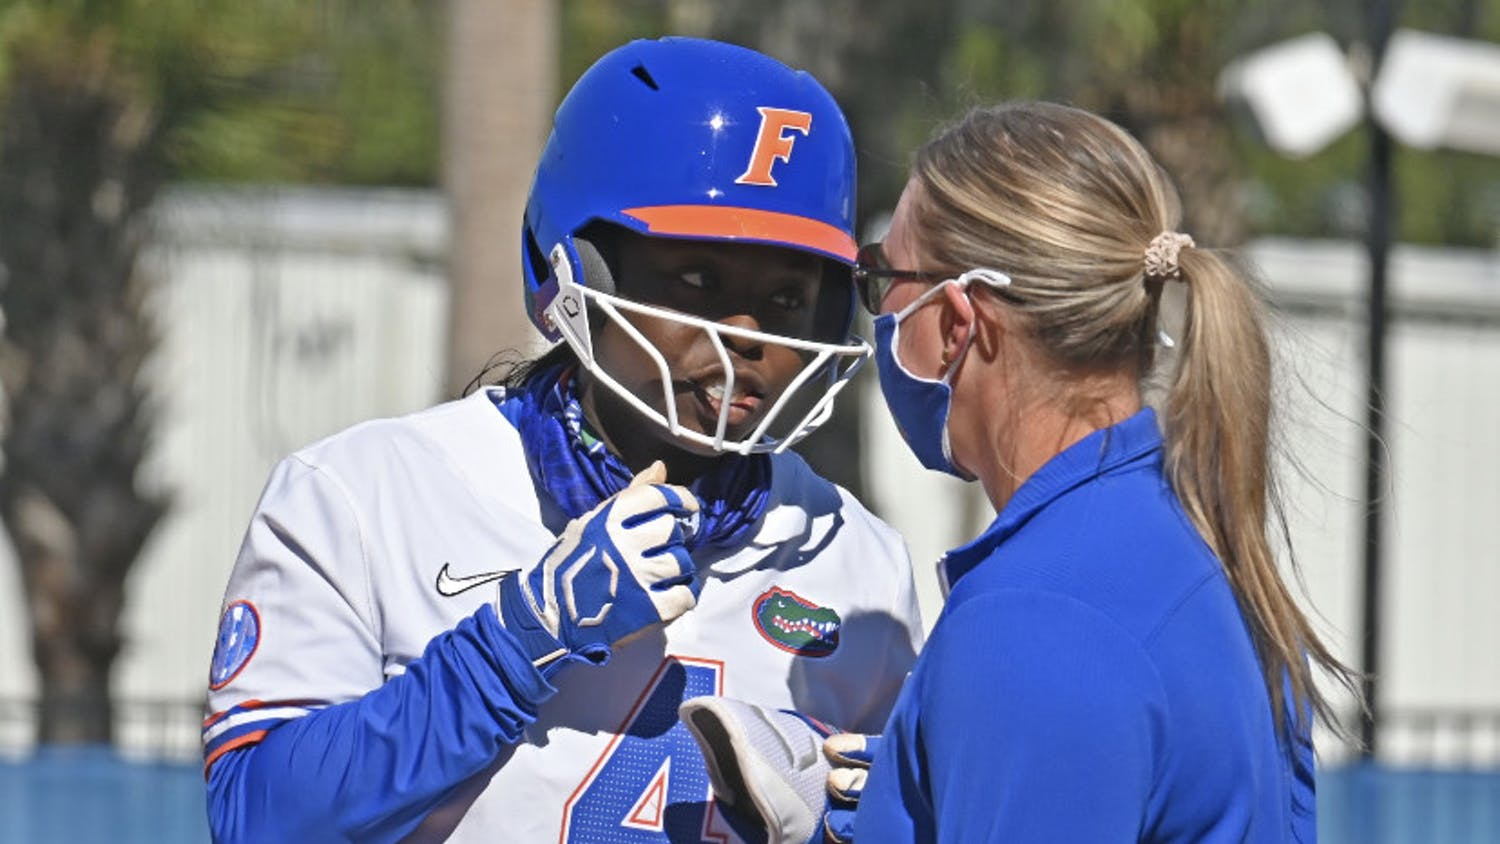 UF third-baseman Charla Echols in conversation with a base coach. Echols notched an RBI-double Wednesday.